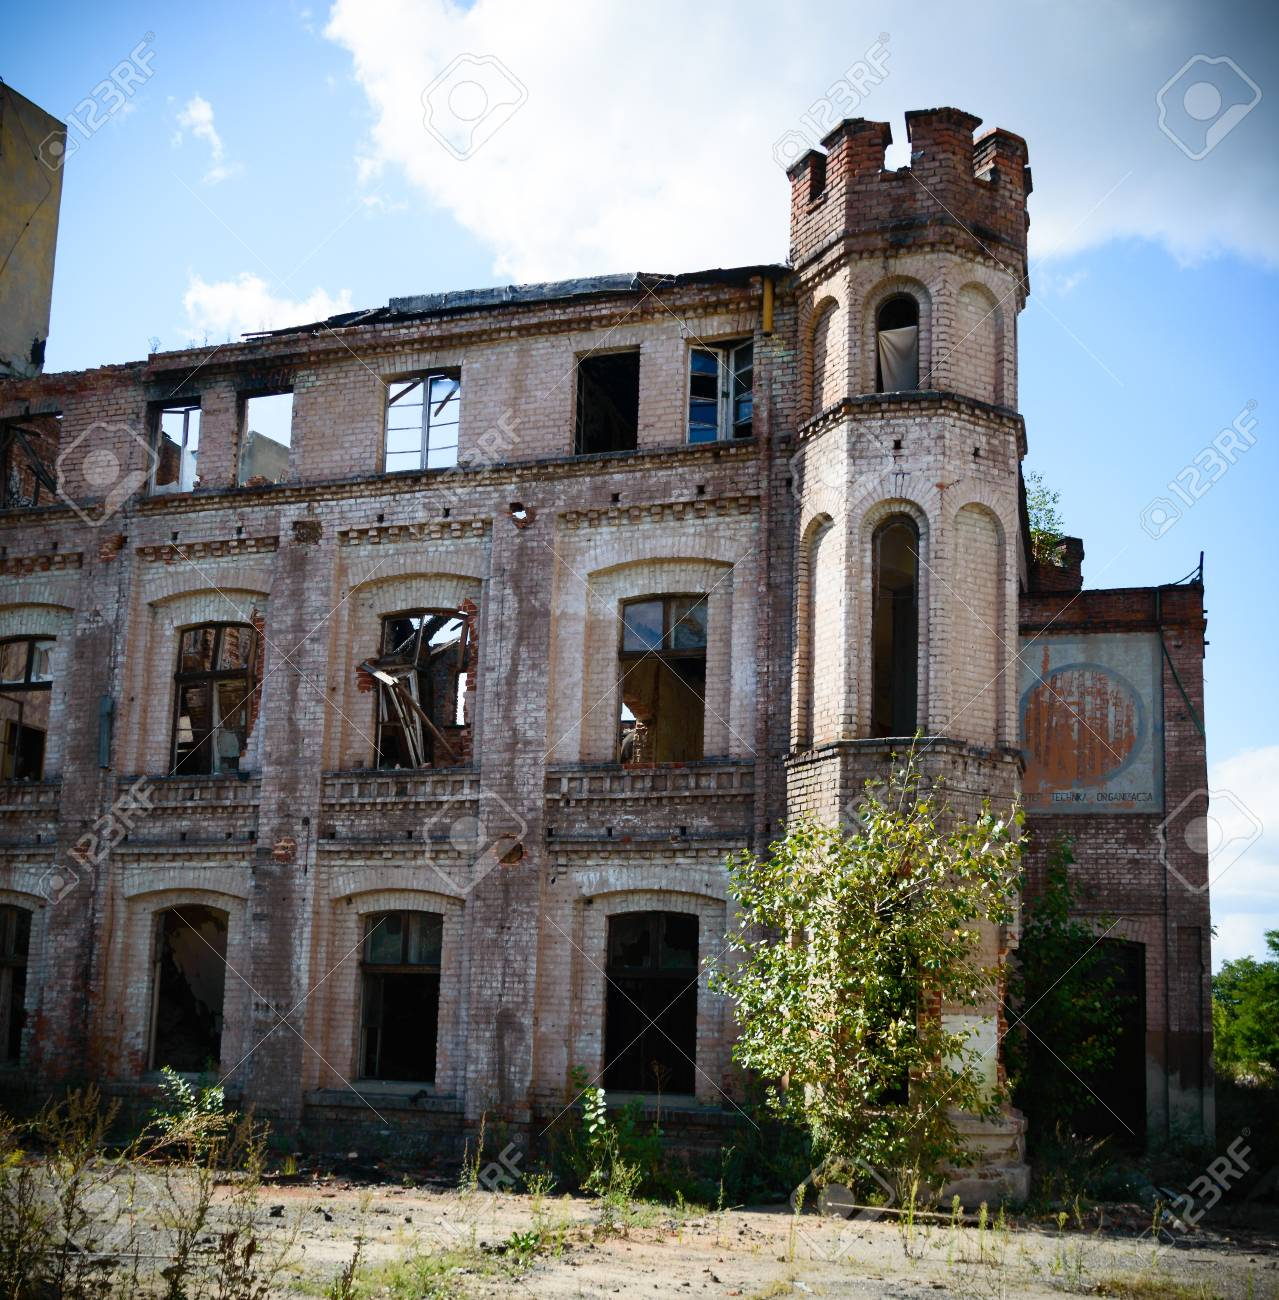 ruins of a very heavily polluted industrial factory, place was known as one of the most polluted towns in Europe Stock Photo - 22120921